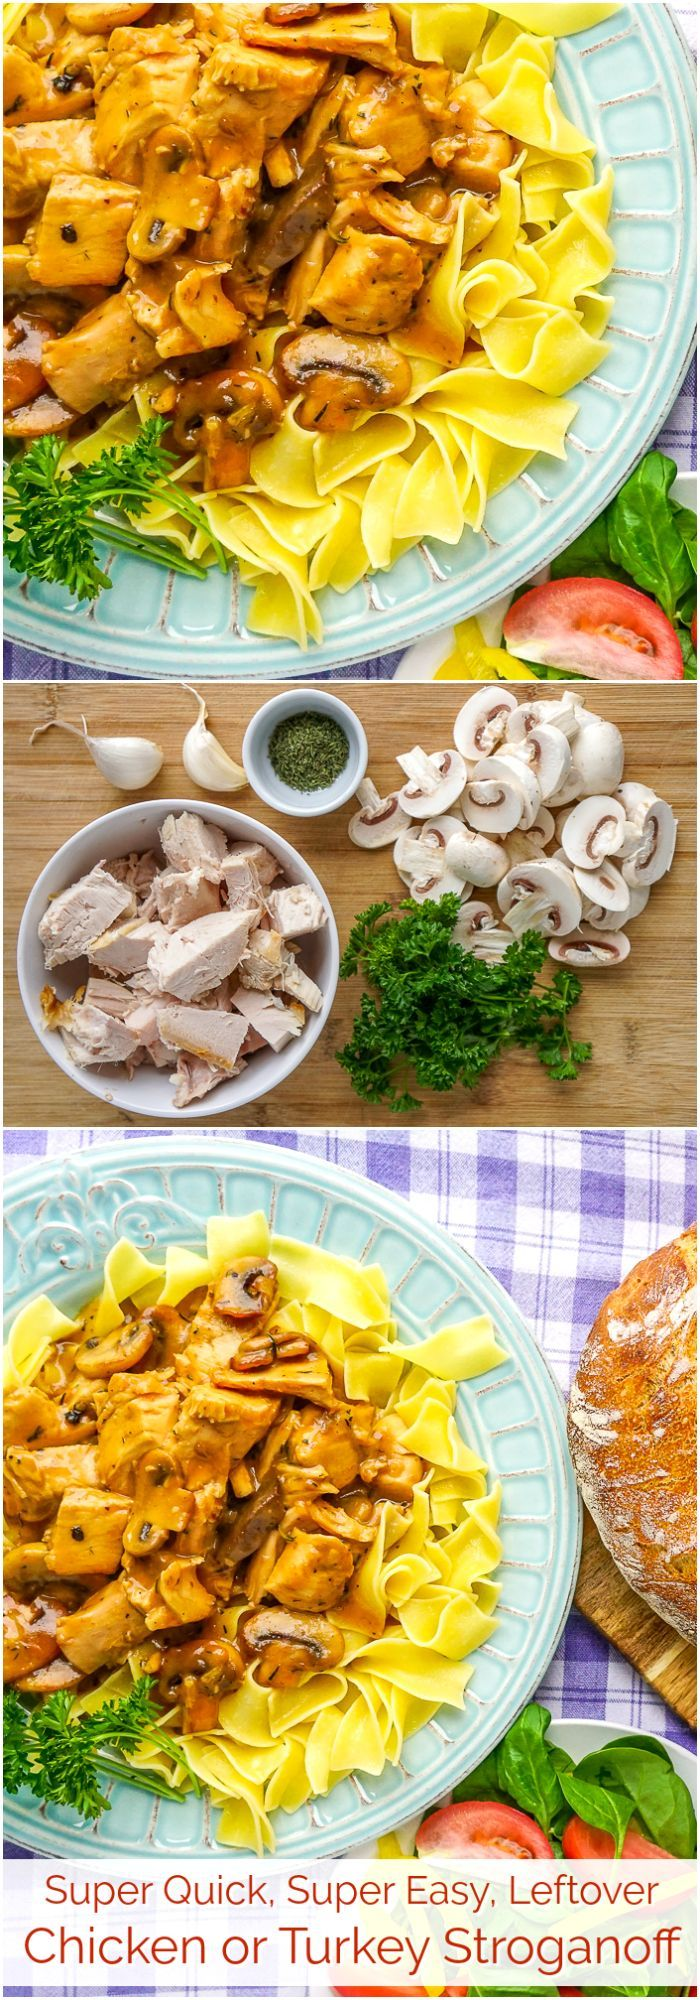 Easy Leftover Chicken or Turkey Stroganoff. Super Quick & Easy with just few simple ingredients! One of the easiest and most delicious leftover turkey or chicken dinners we have ever featured in 10 years here on Rock Recipes.  #leftovers #leftoverchicken #leftoverturkey #thanksgivingleftovers #christmasleftovers #quickandeasymeals #budgetmeals #mealplanning